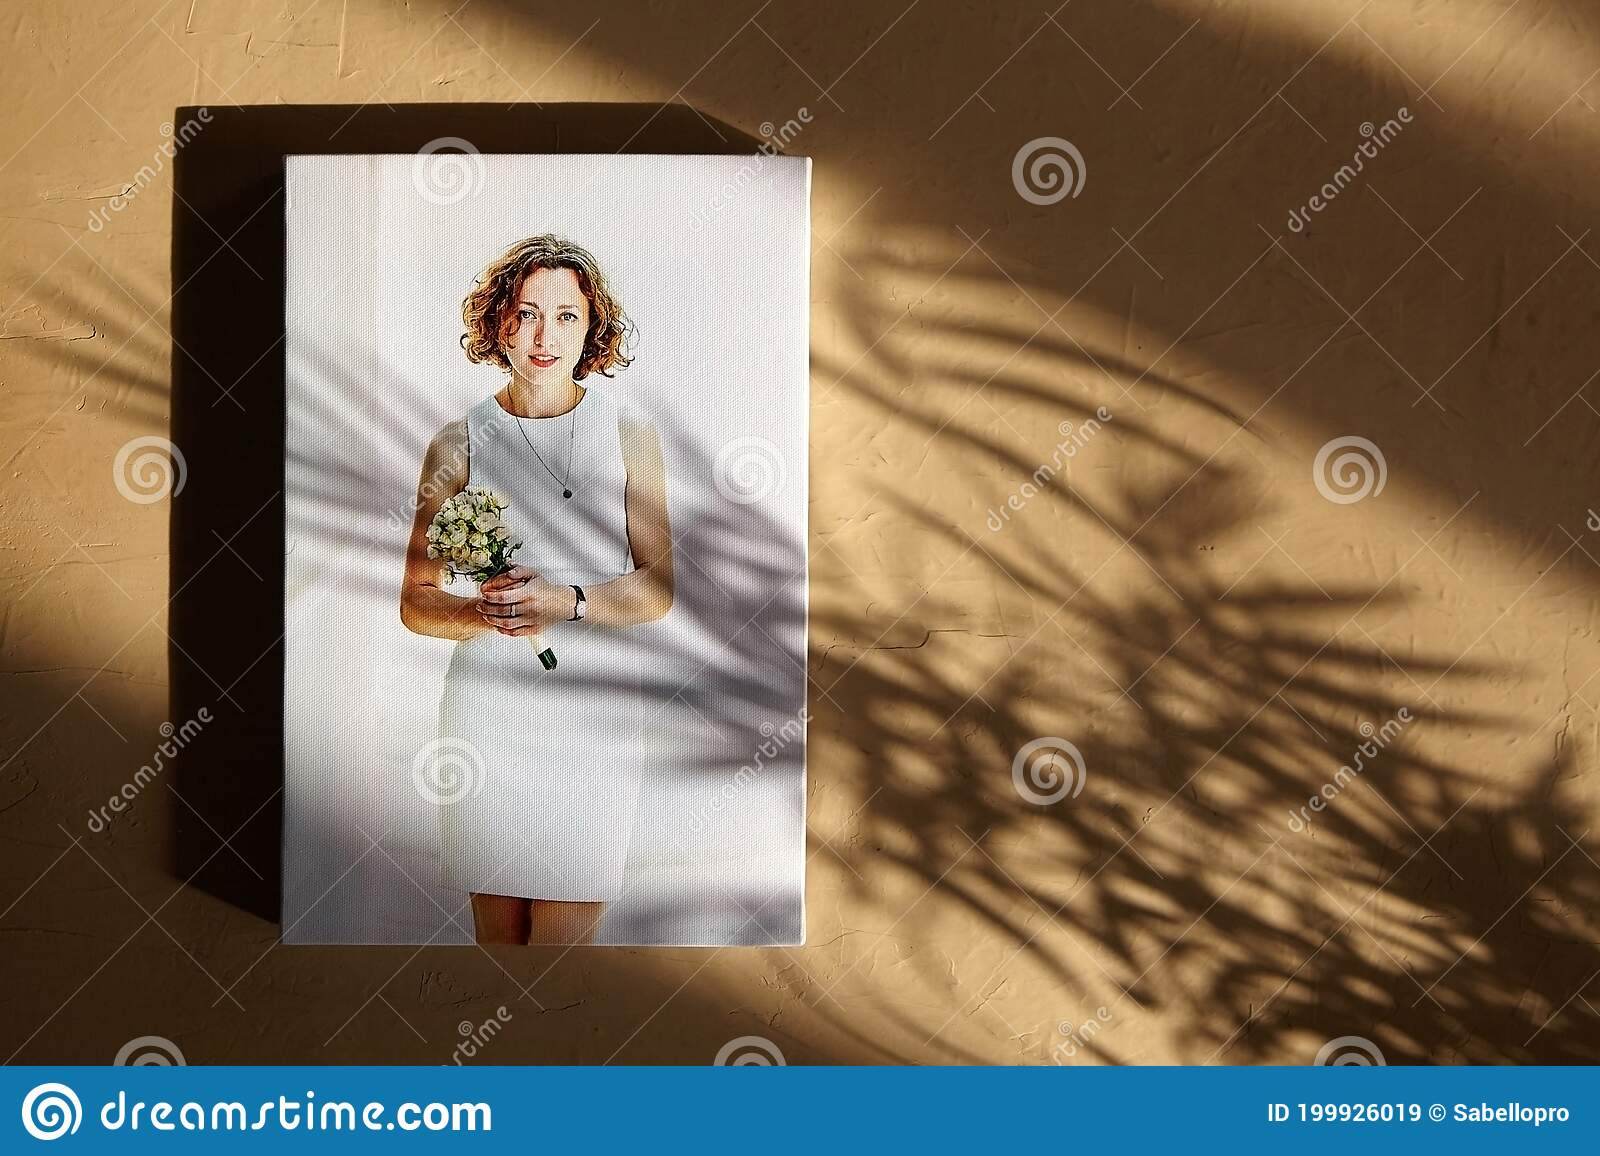 Canvas Print Photo On Wall With Sunlight And Shadow Of Leaves Stock Image Image Of Light Colorful 199926019